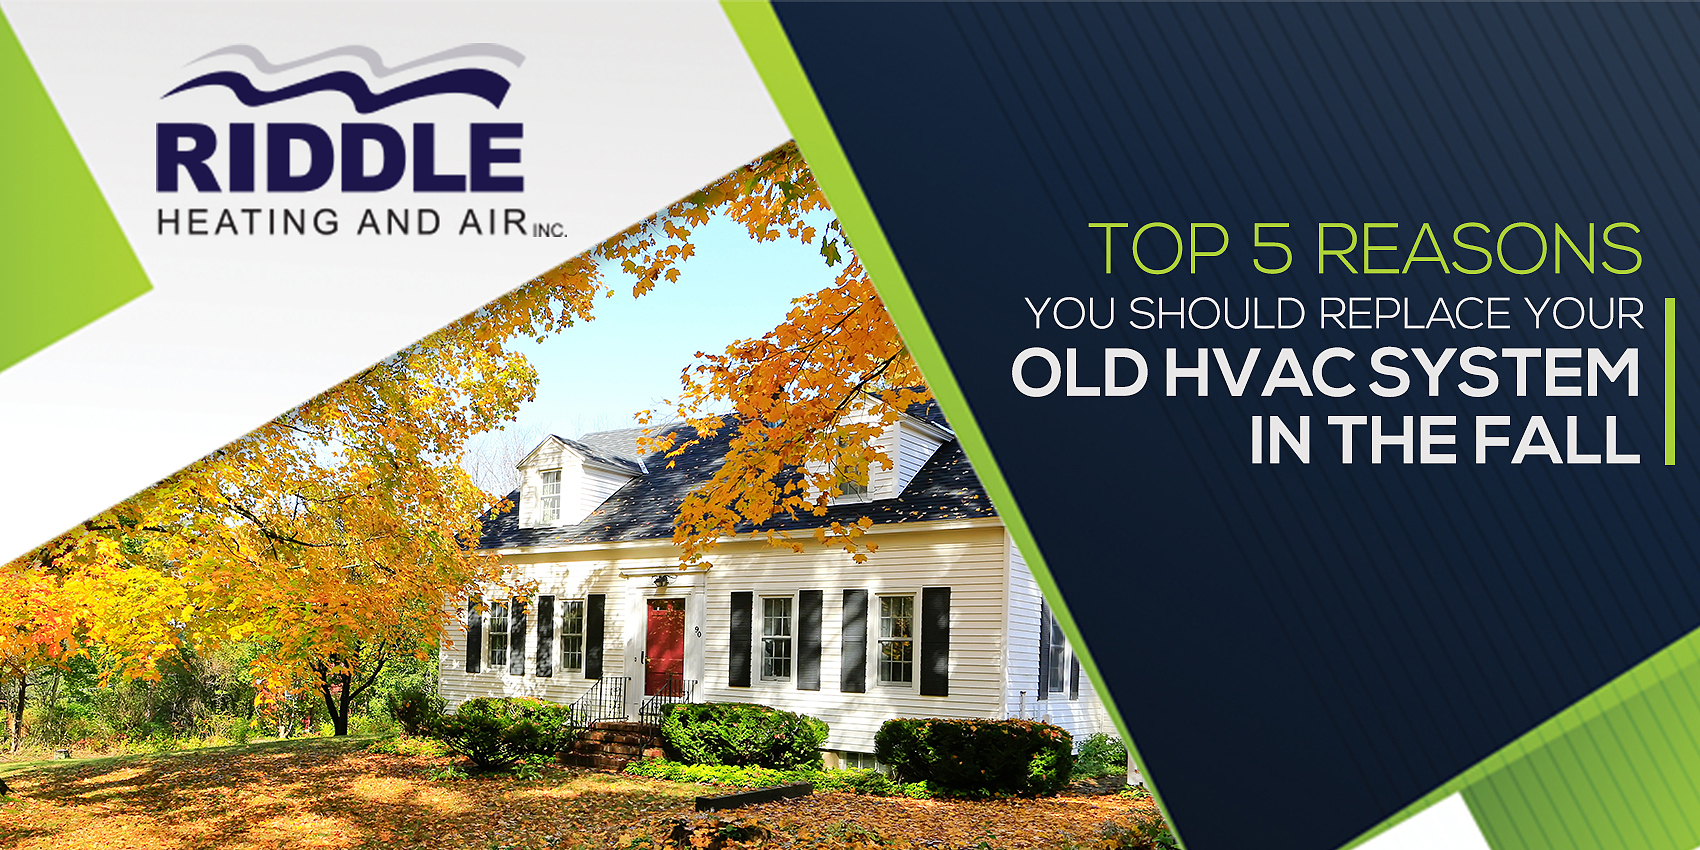 Top 5 Reasons Why You Should Replace Your Old HVAC System in the Fall